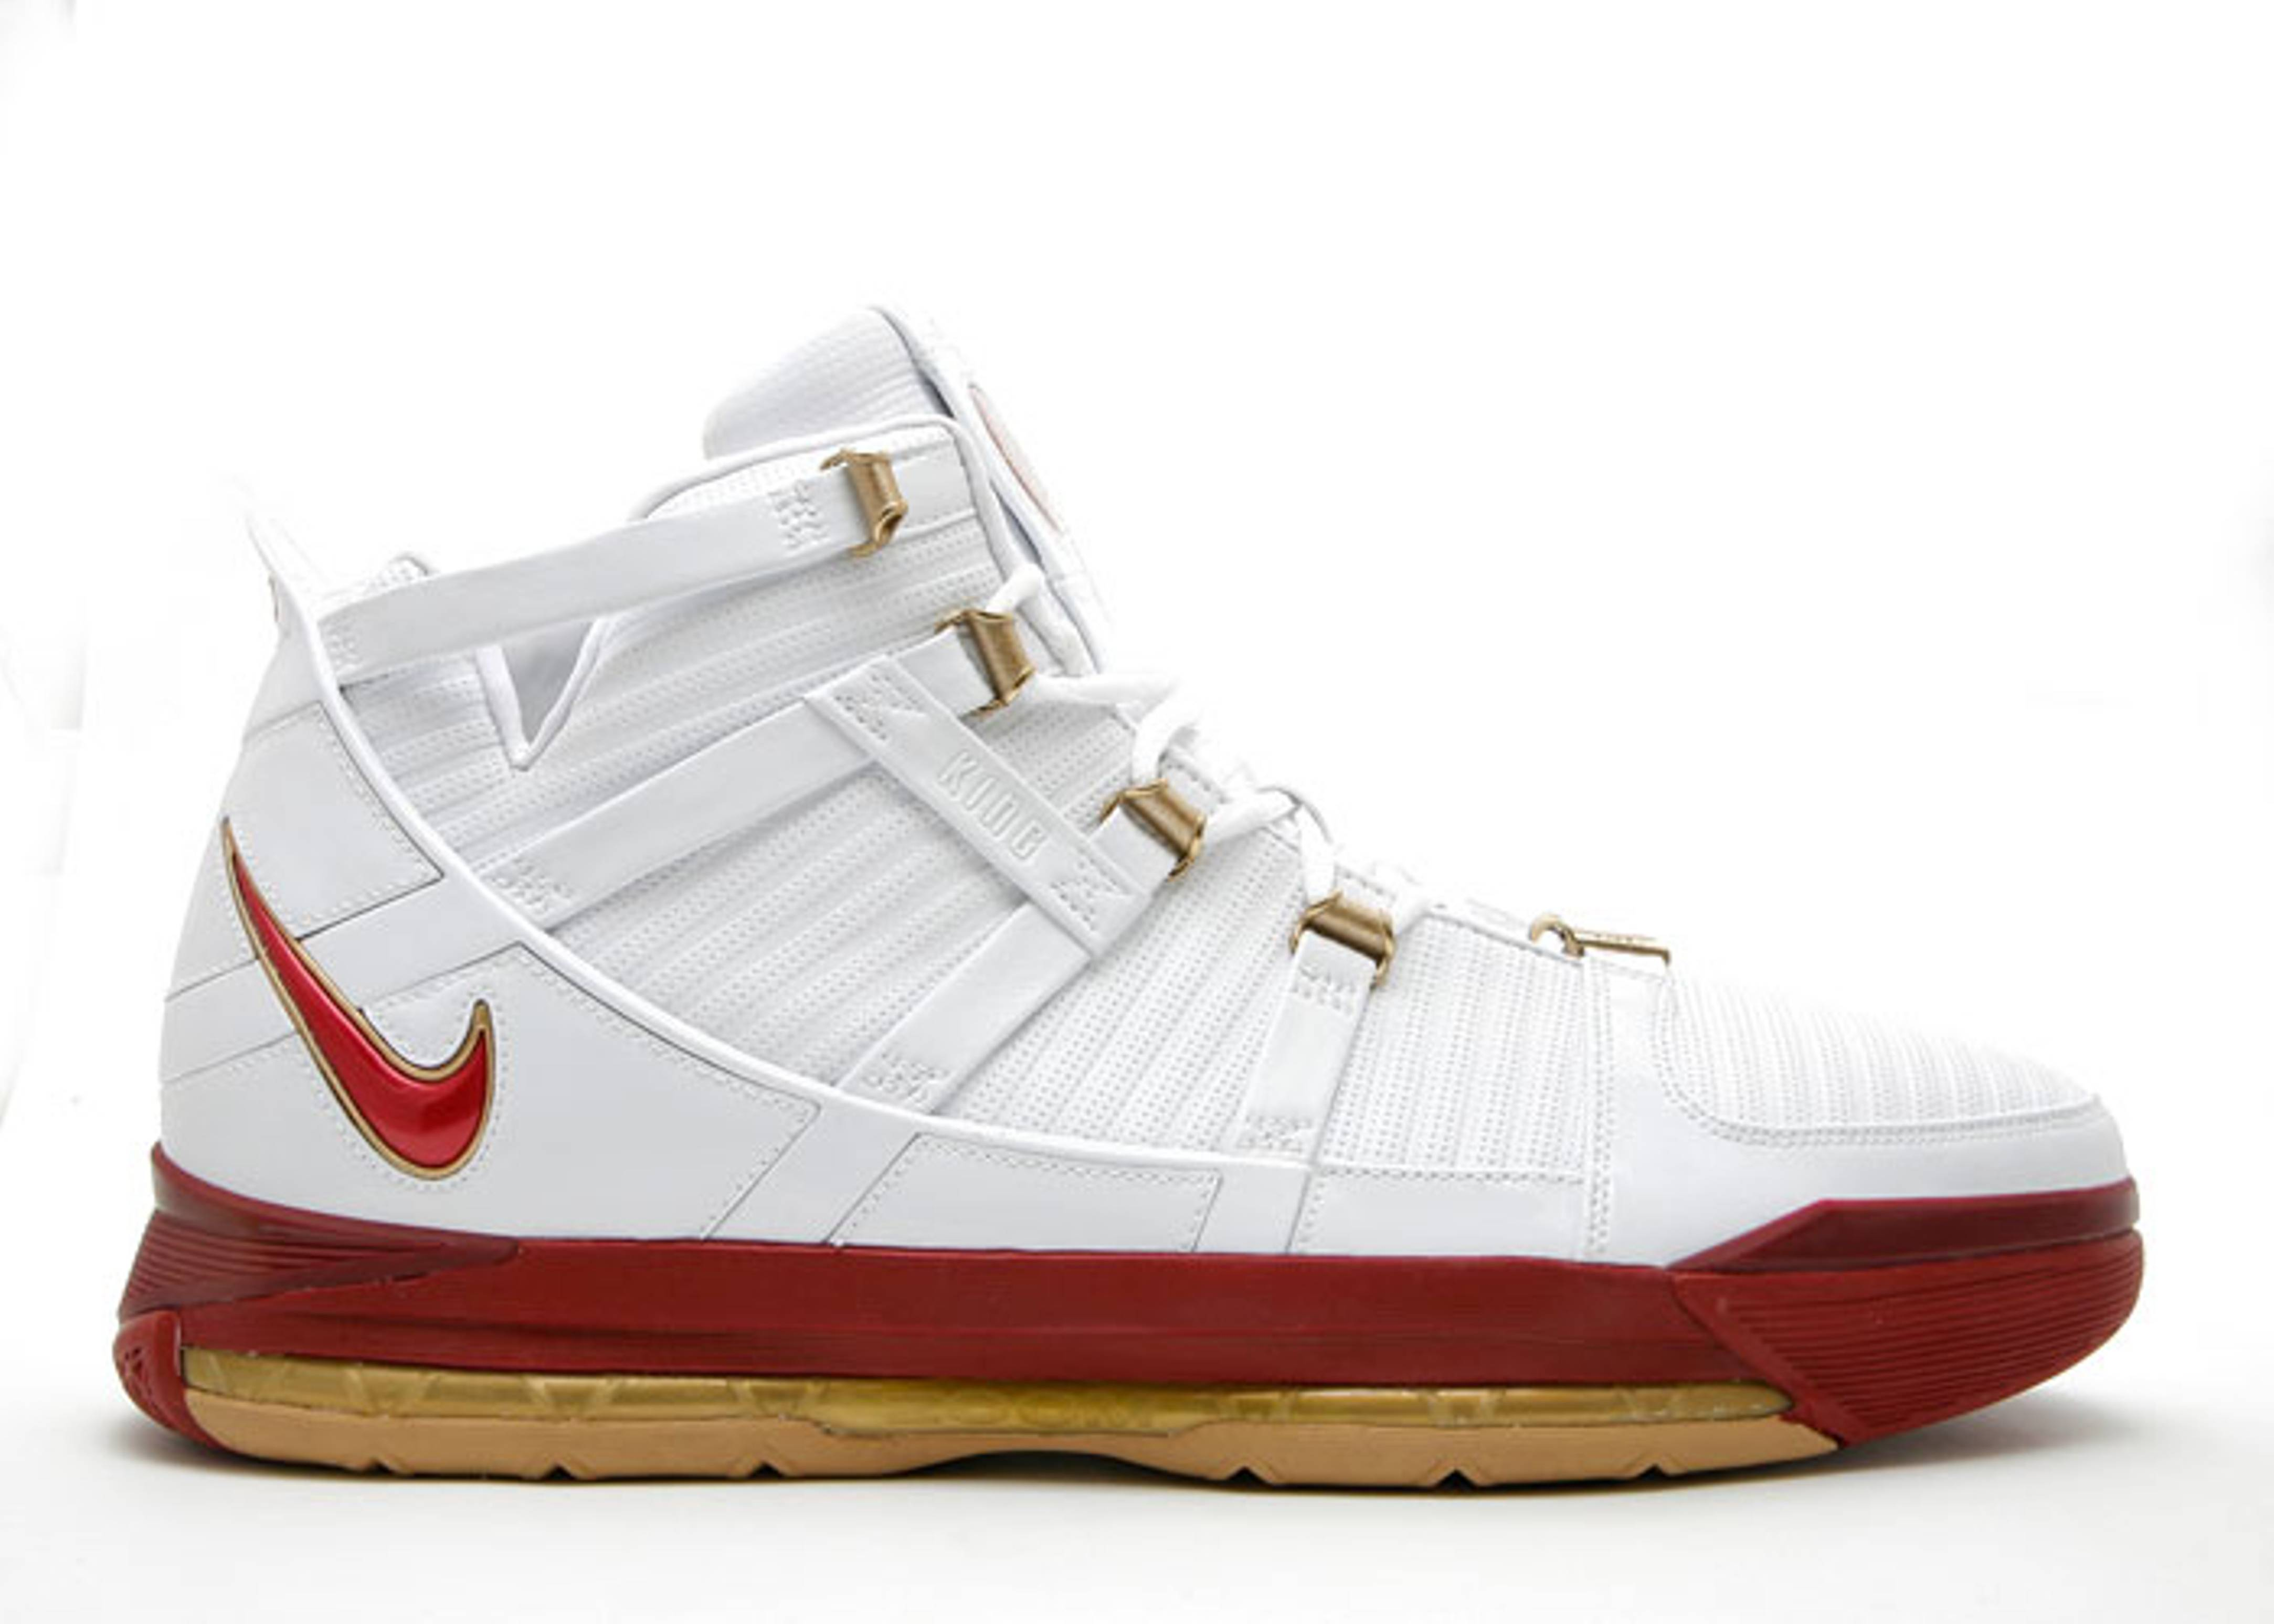 2d7f7782b0a40 Cheap Lebron X Shoes For Kids Lebron 15 Kids   Centre for Policy ...